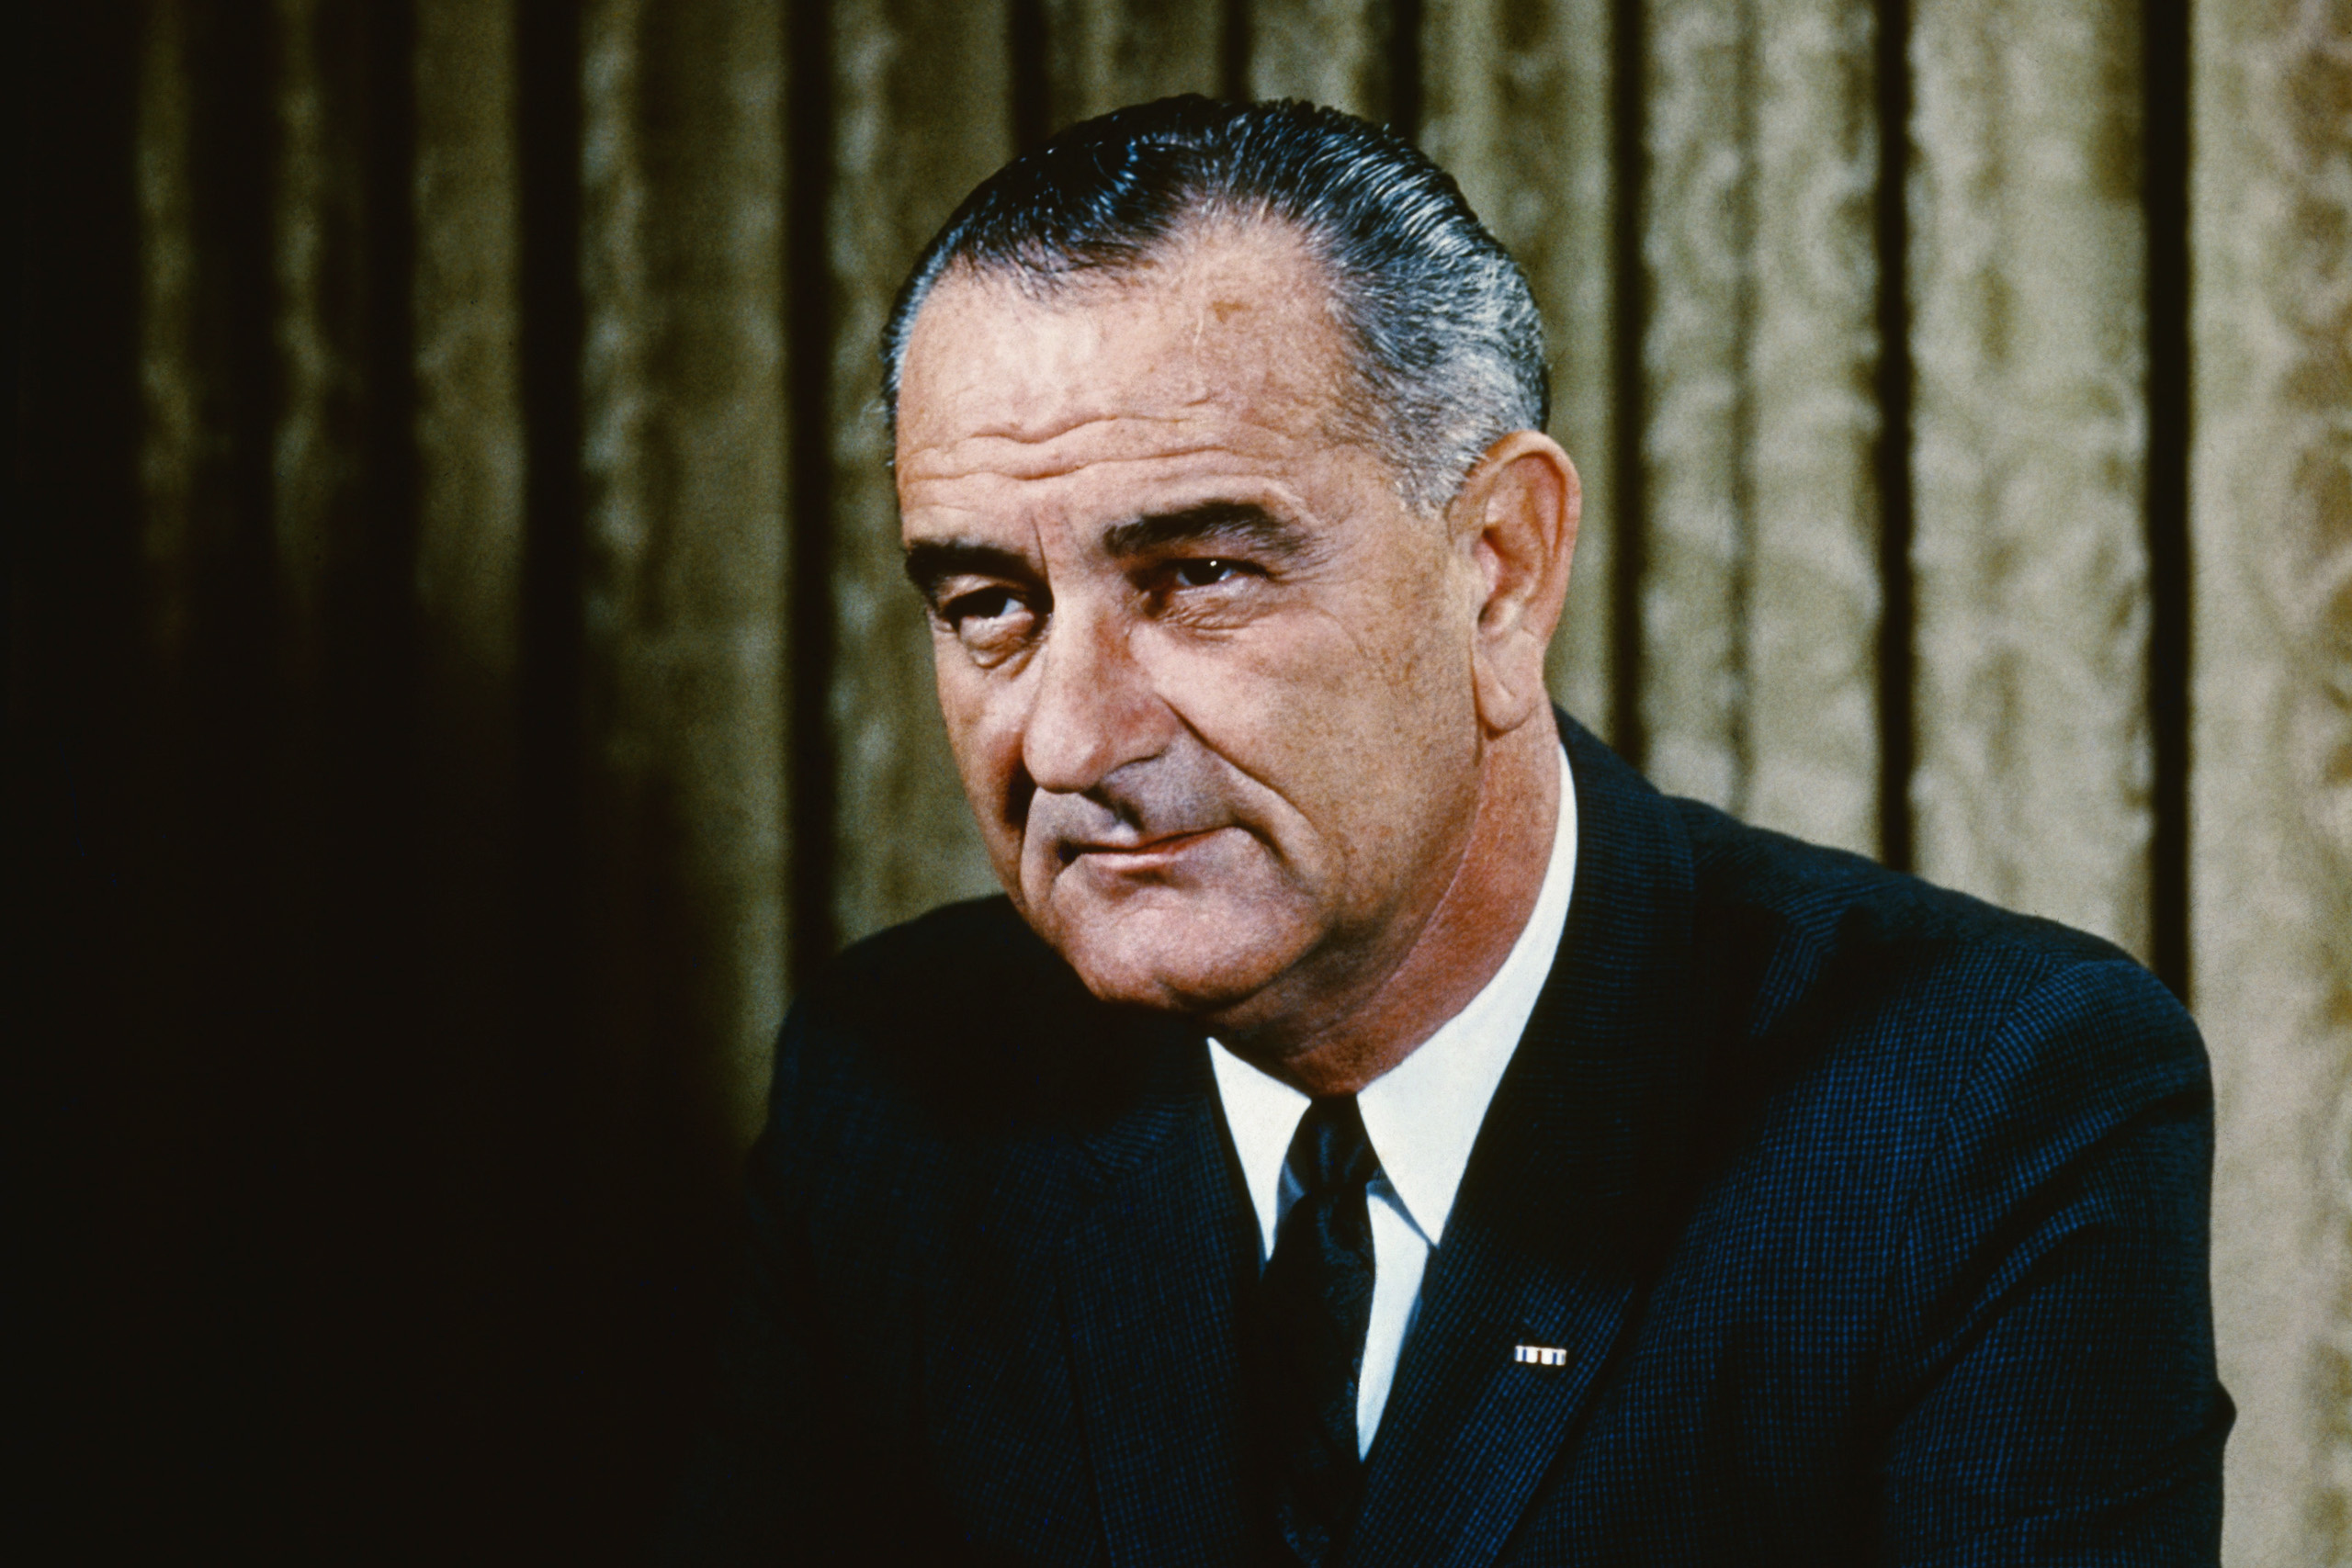 Photo of Newly released JFK files reveal Democrat LBJ was a member of the KKK, which was run by Democrats